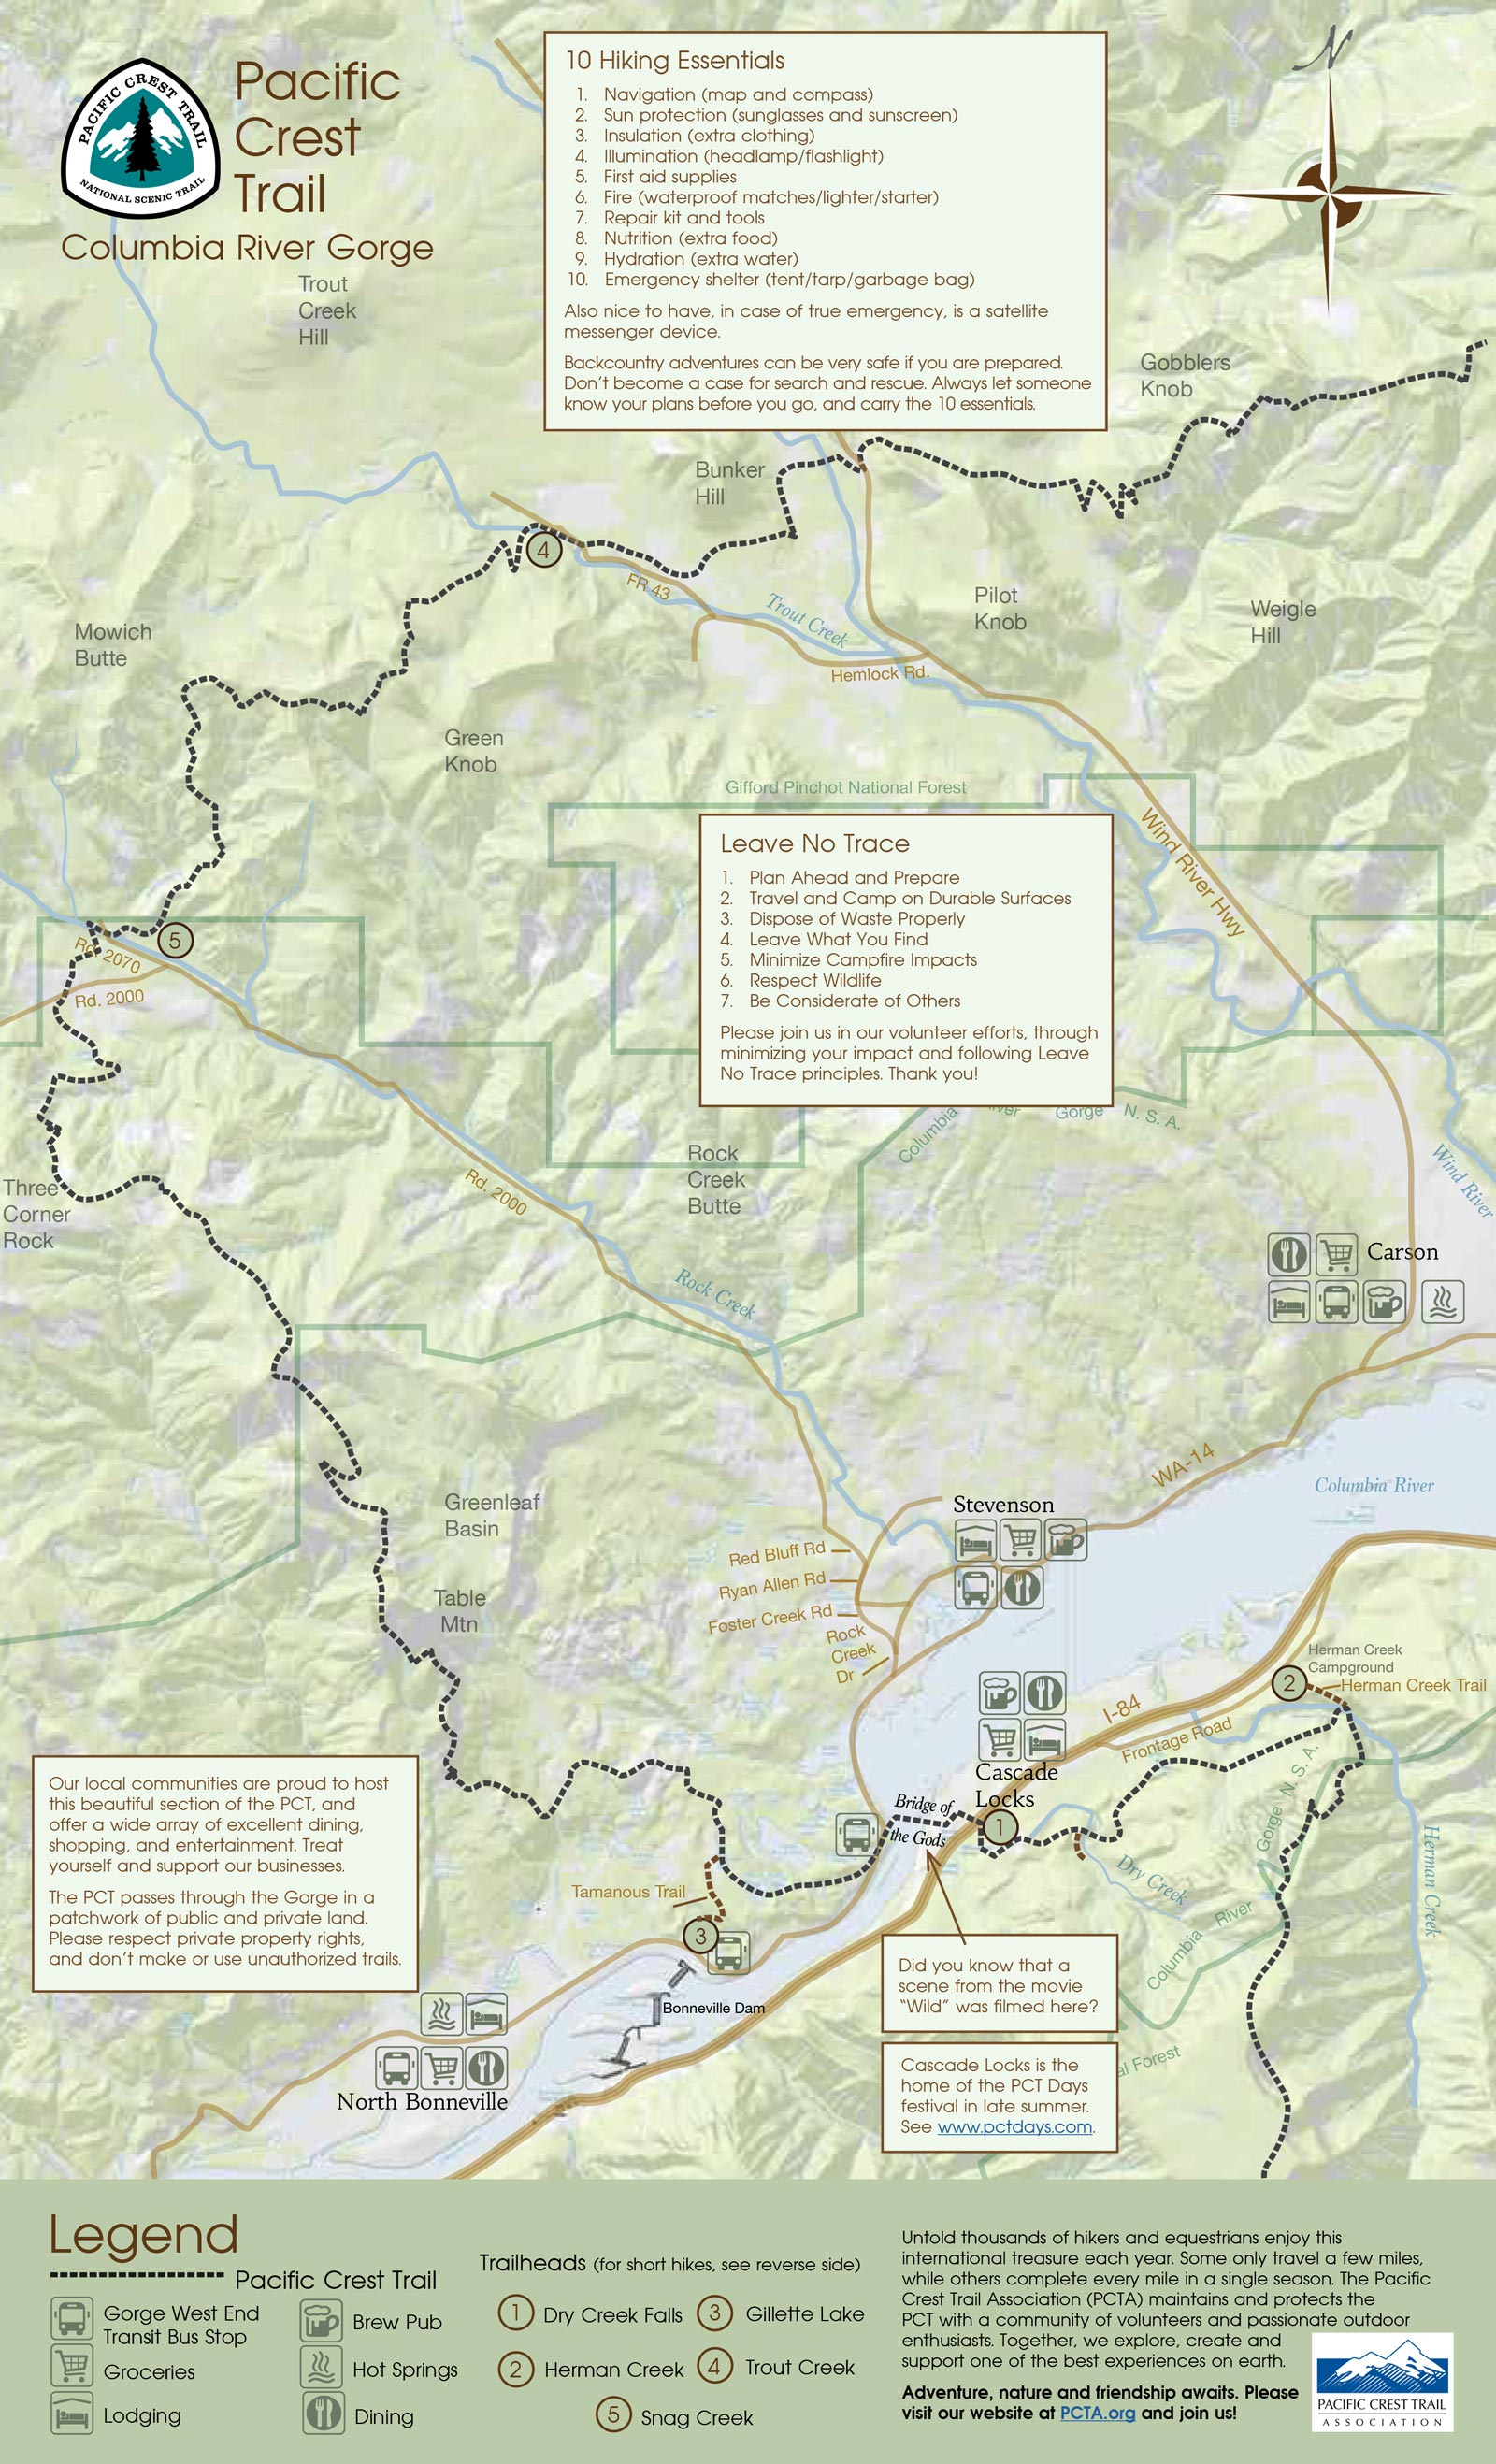 Free map of Pacific Crest Trail in Columbia River Gorge